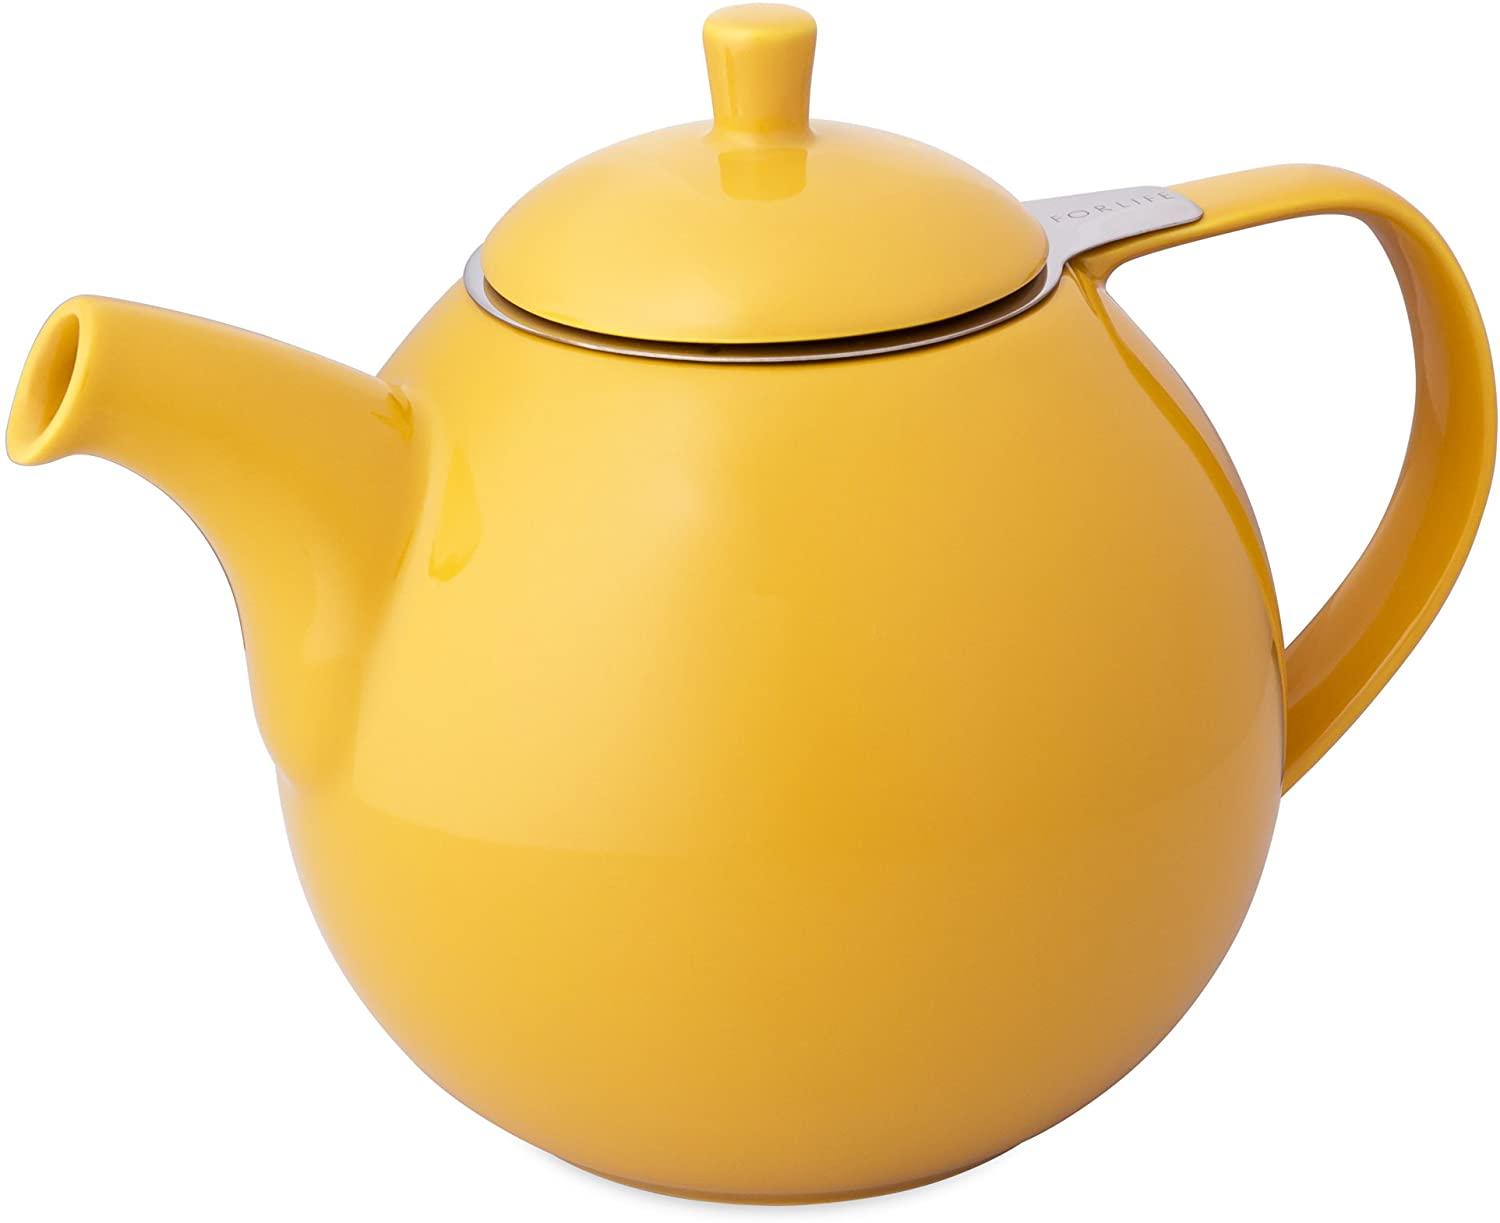 FORLIFE Curve Teapot with Infuser, 45-Ounce, Mandarin